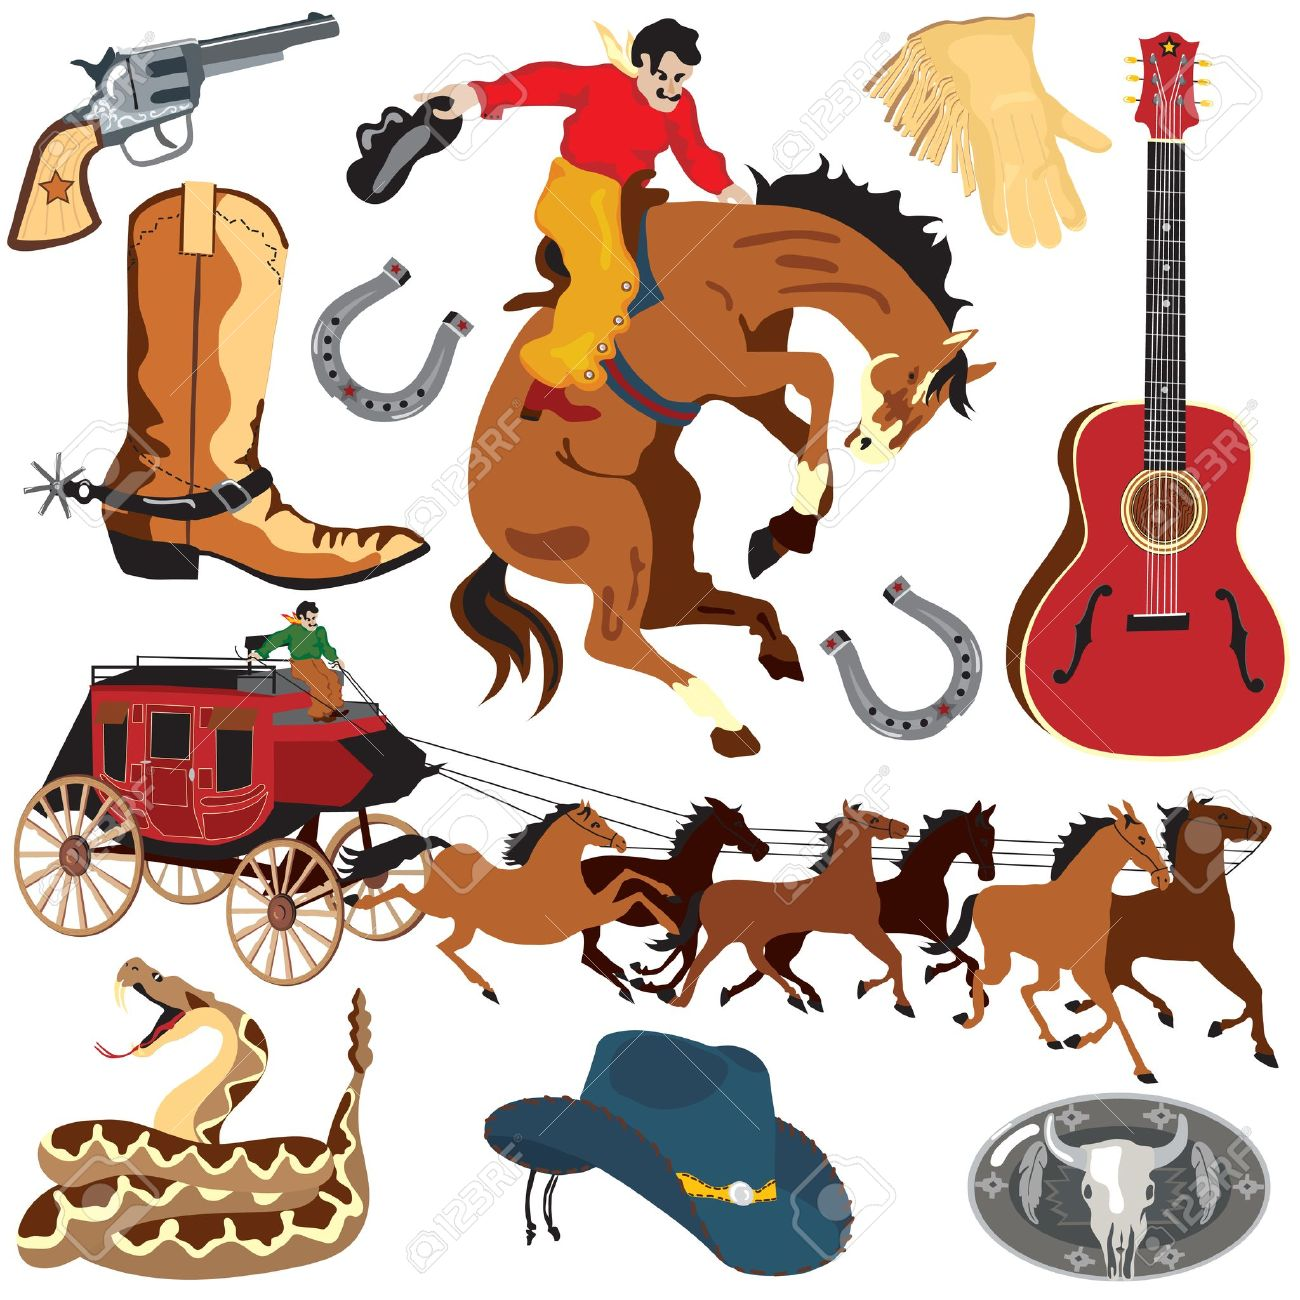 Western Clip Art Vector - ClipartFest-Western clip art vector - ClipartFest-15